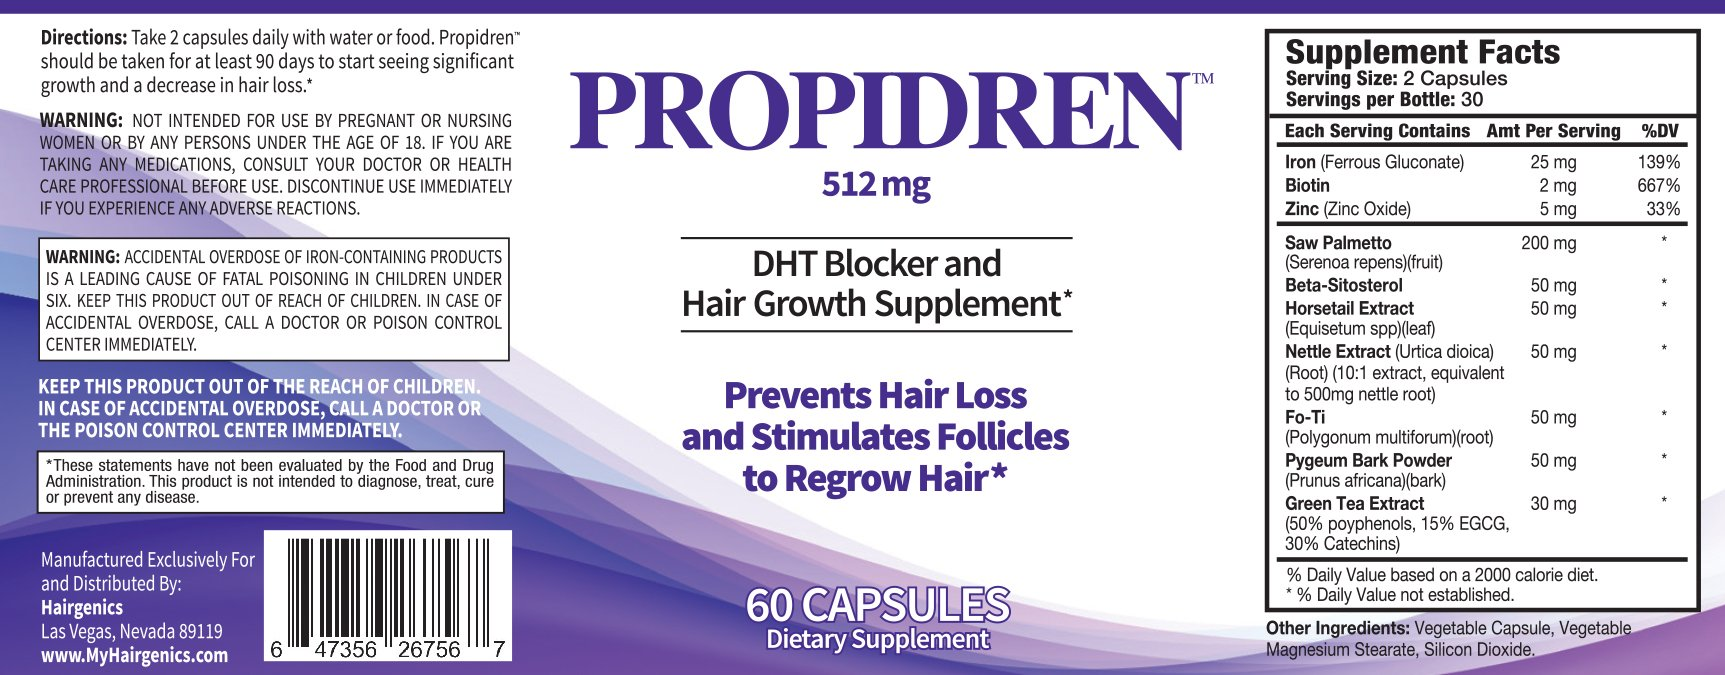 Propidren by HairGenics - DHT Blocker & Hair Growth Supplement with Saw Palmetto & Biotin to Prevent Hair Loss and Stimulate Hair Follicles to Stop Hair Loss and Regrow Hair.